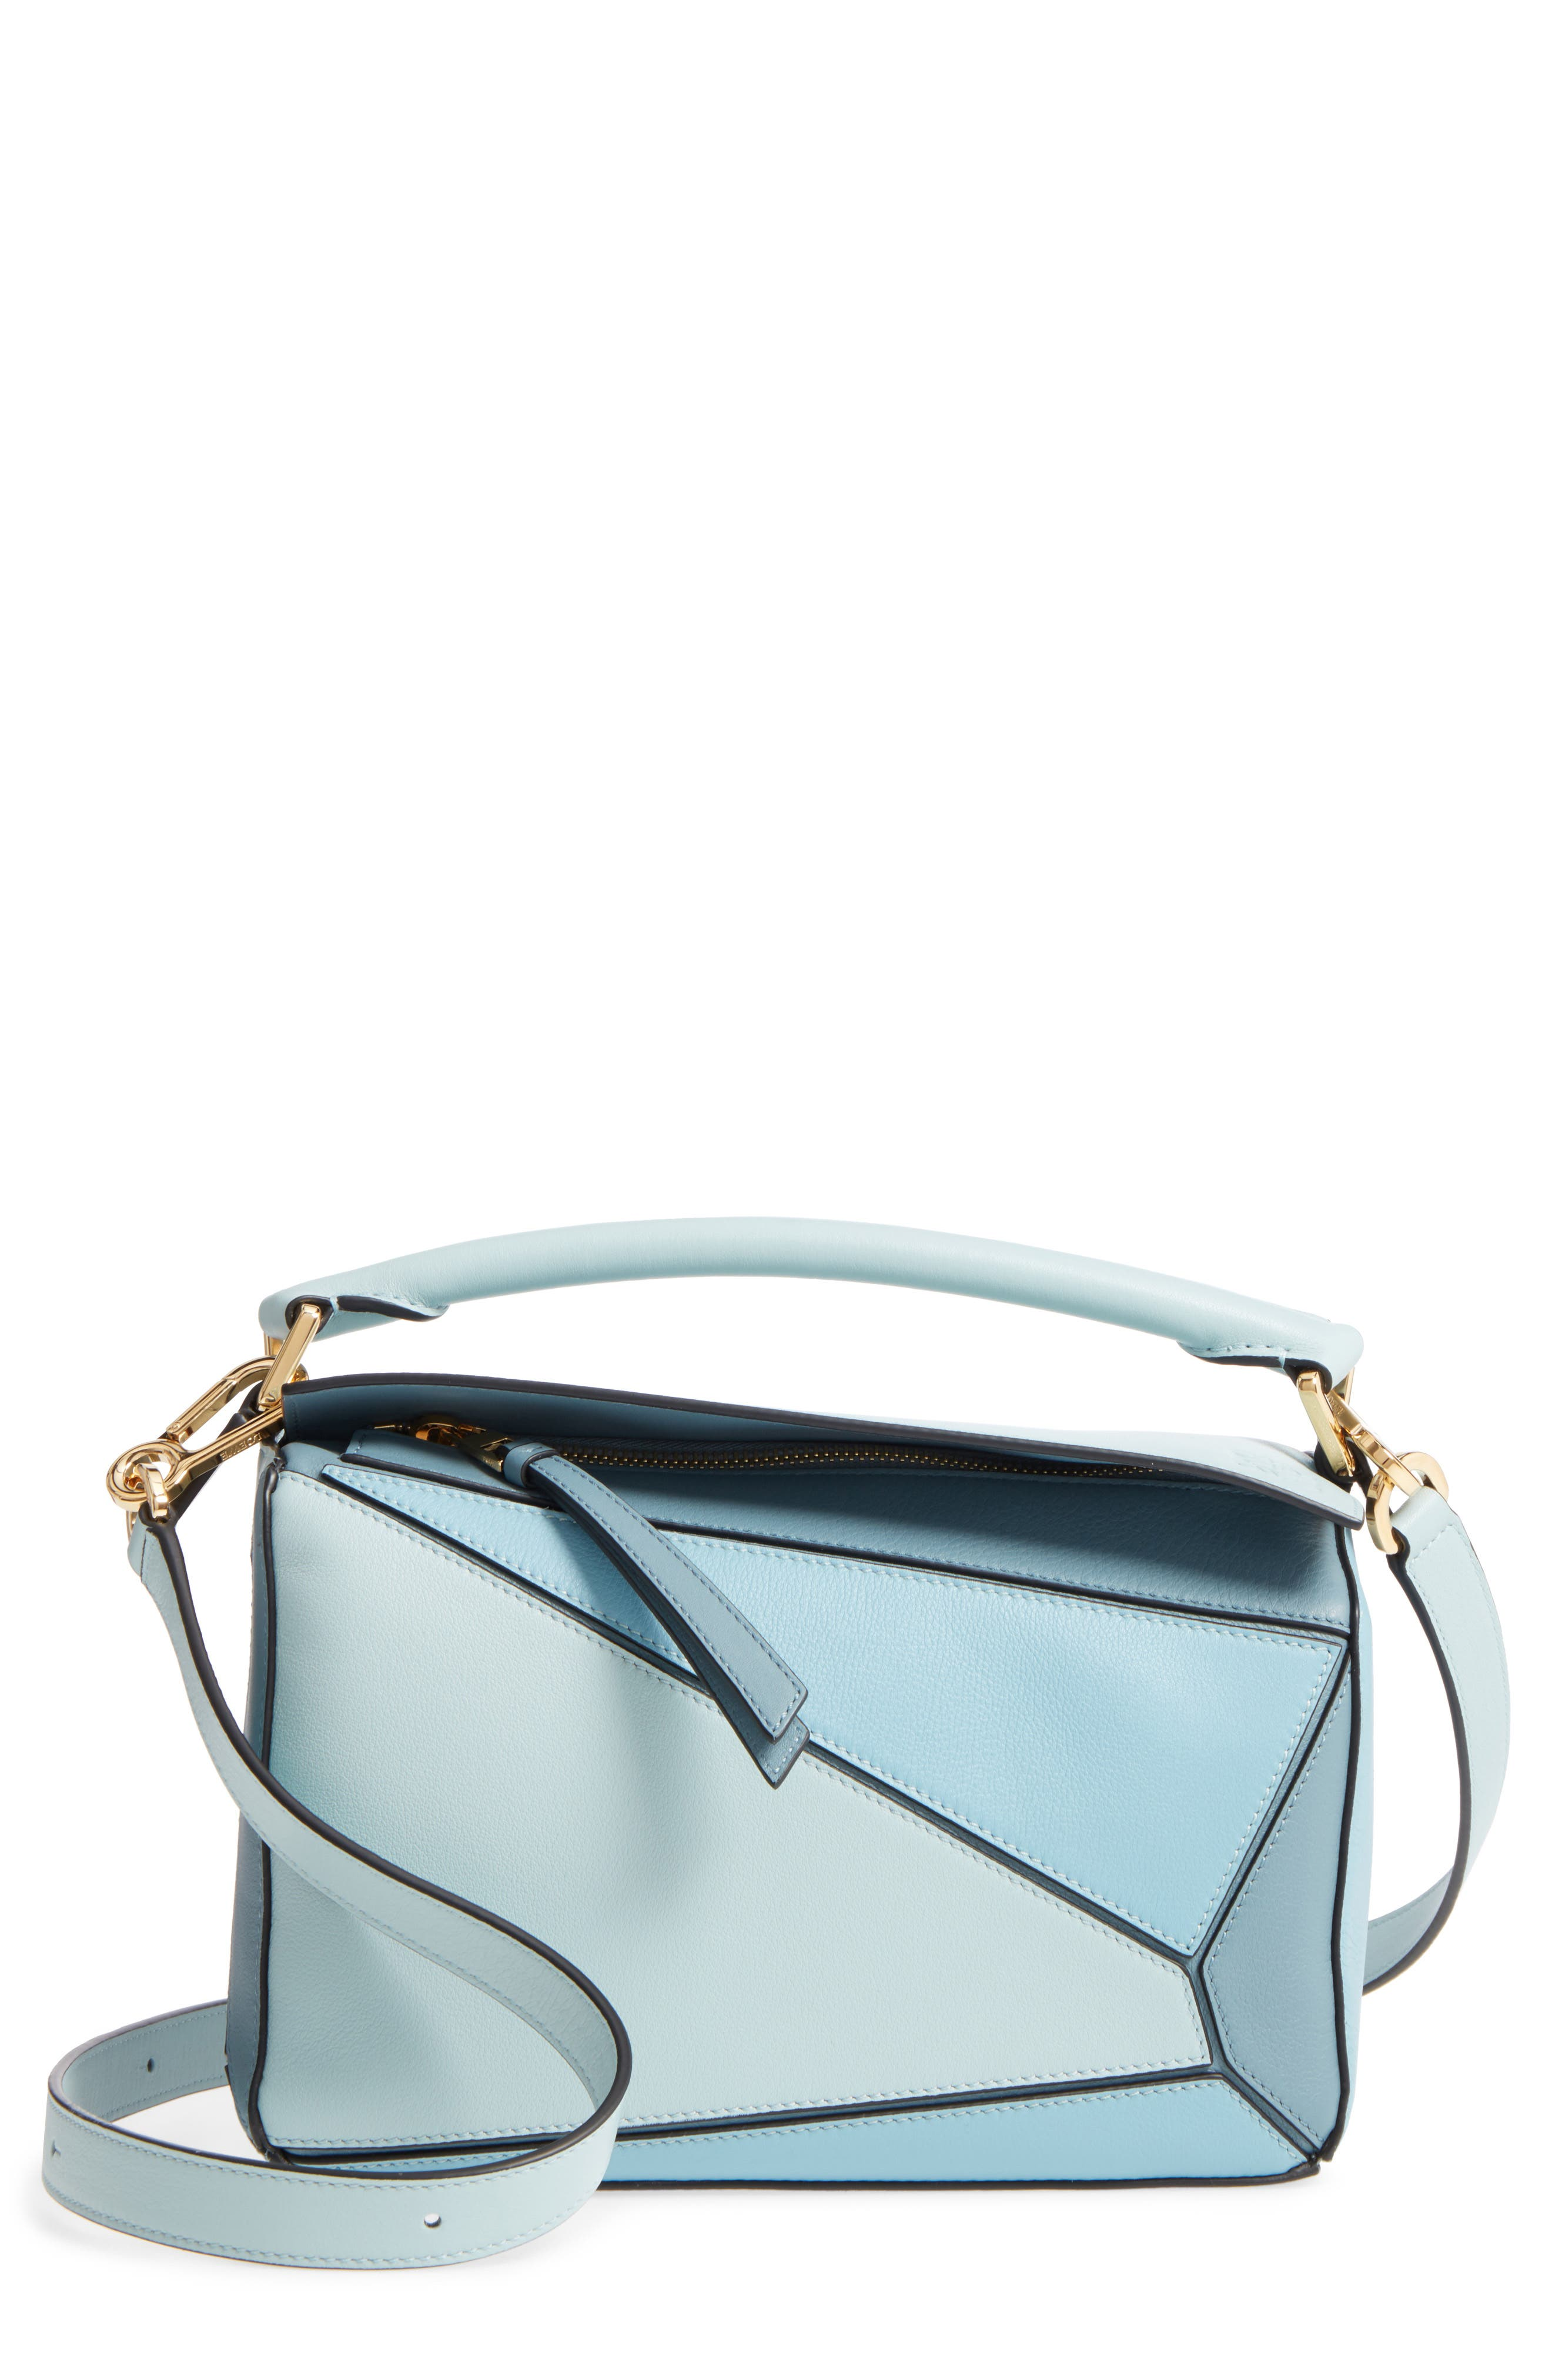 Main Image - Loewe Small Puzzle Tricolor Leather Bag